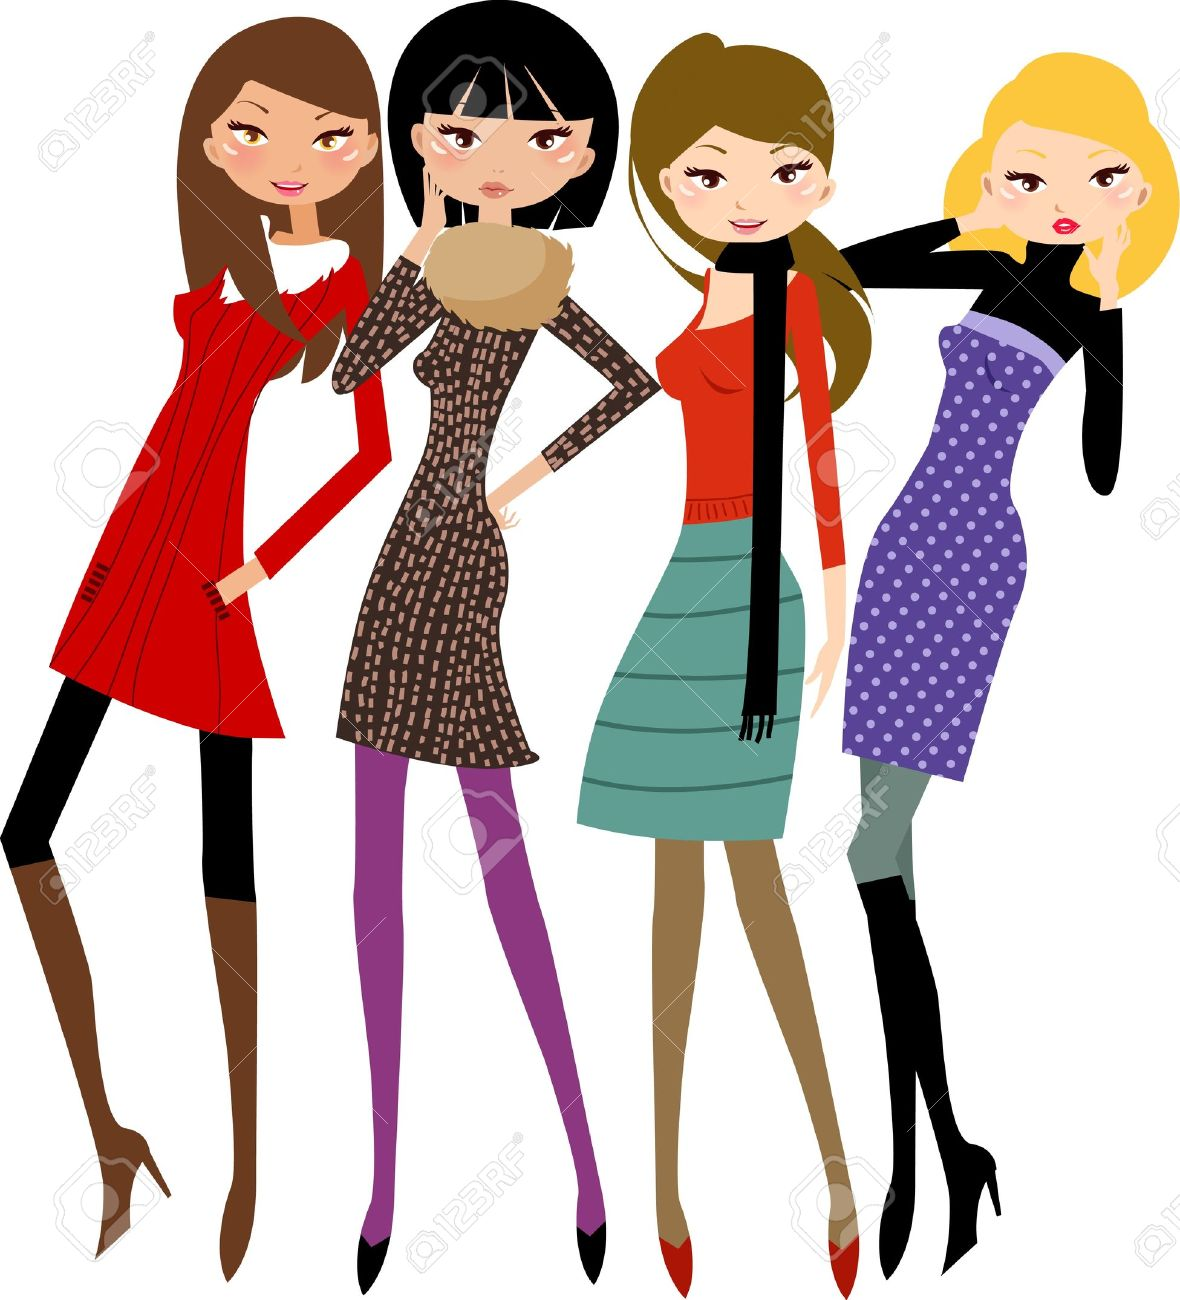 Women friend clipart clip transparent Friends Hanging Out Clipart | Free download best Friends ... clip transparent